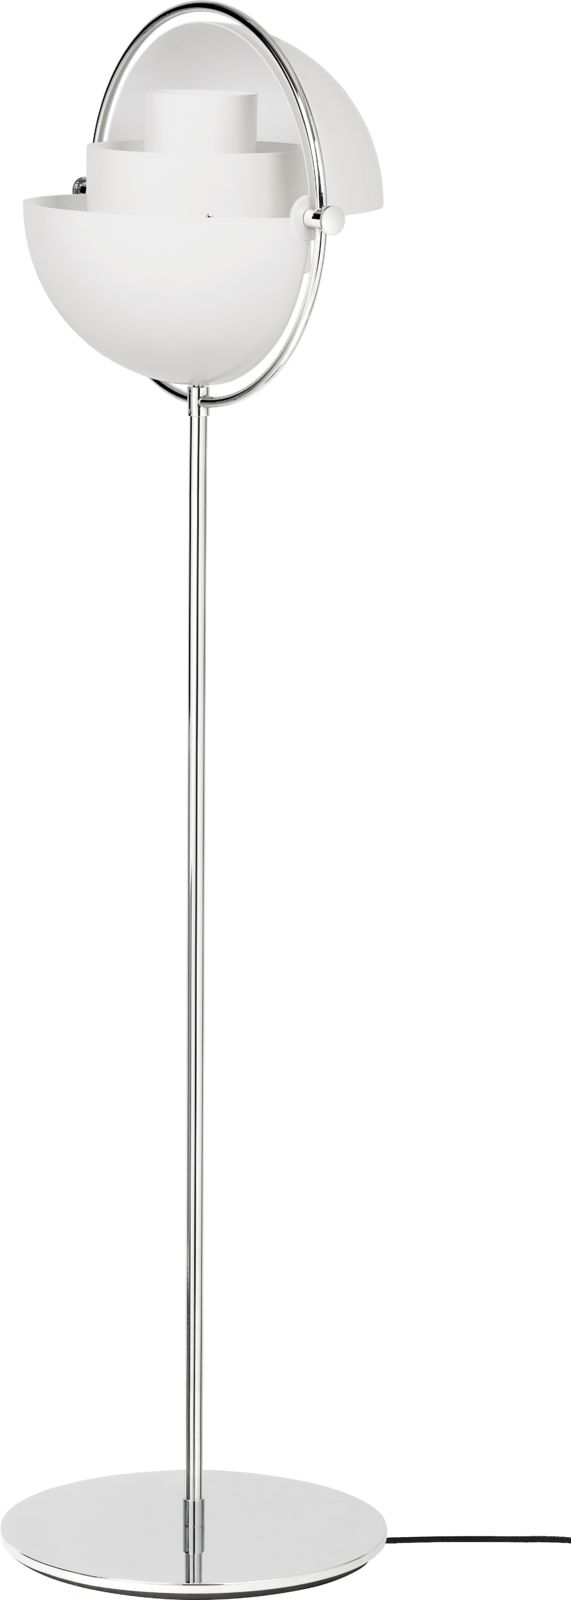 Gubi Multi-Lite Floor Lamp Chrome/White